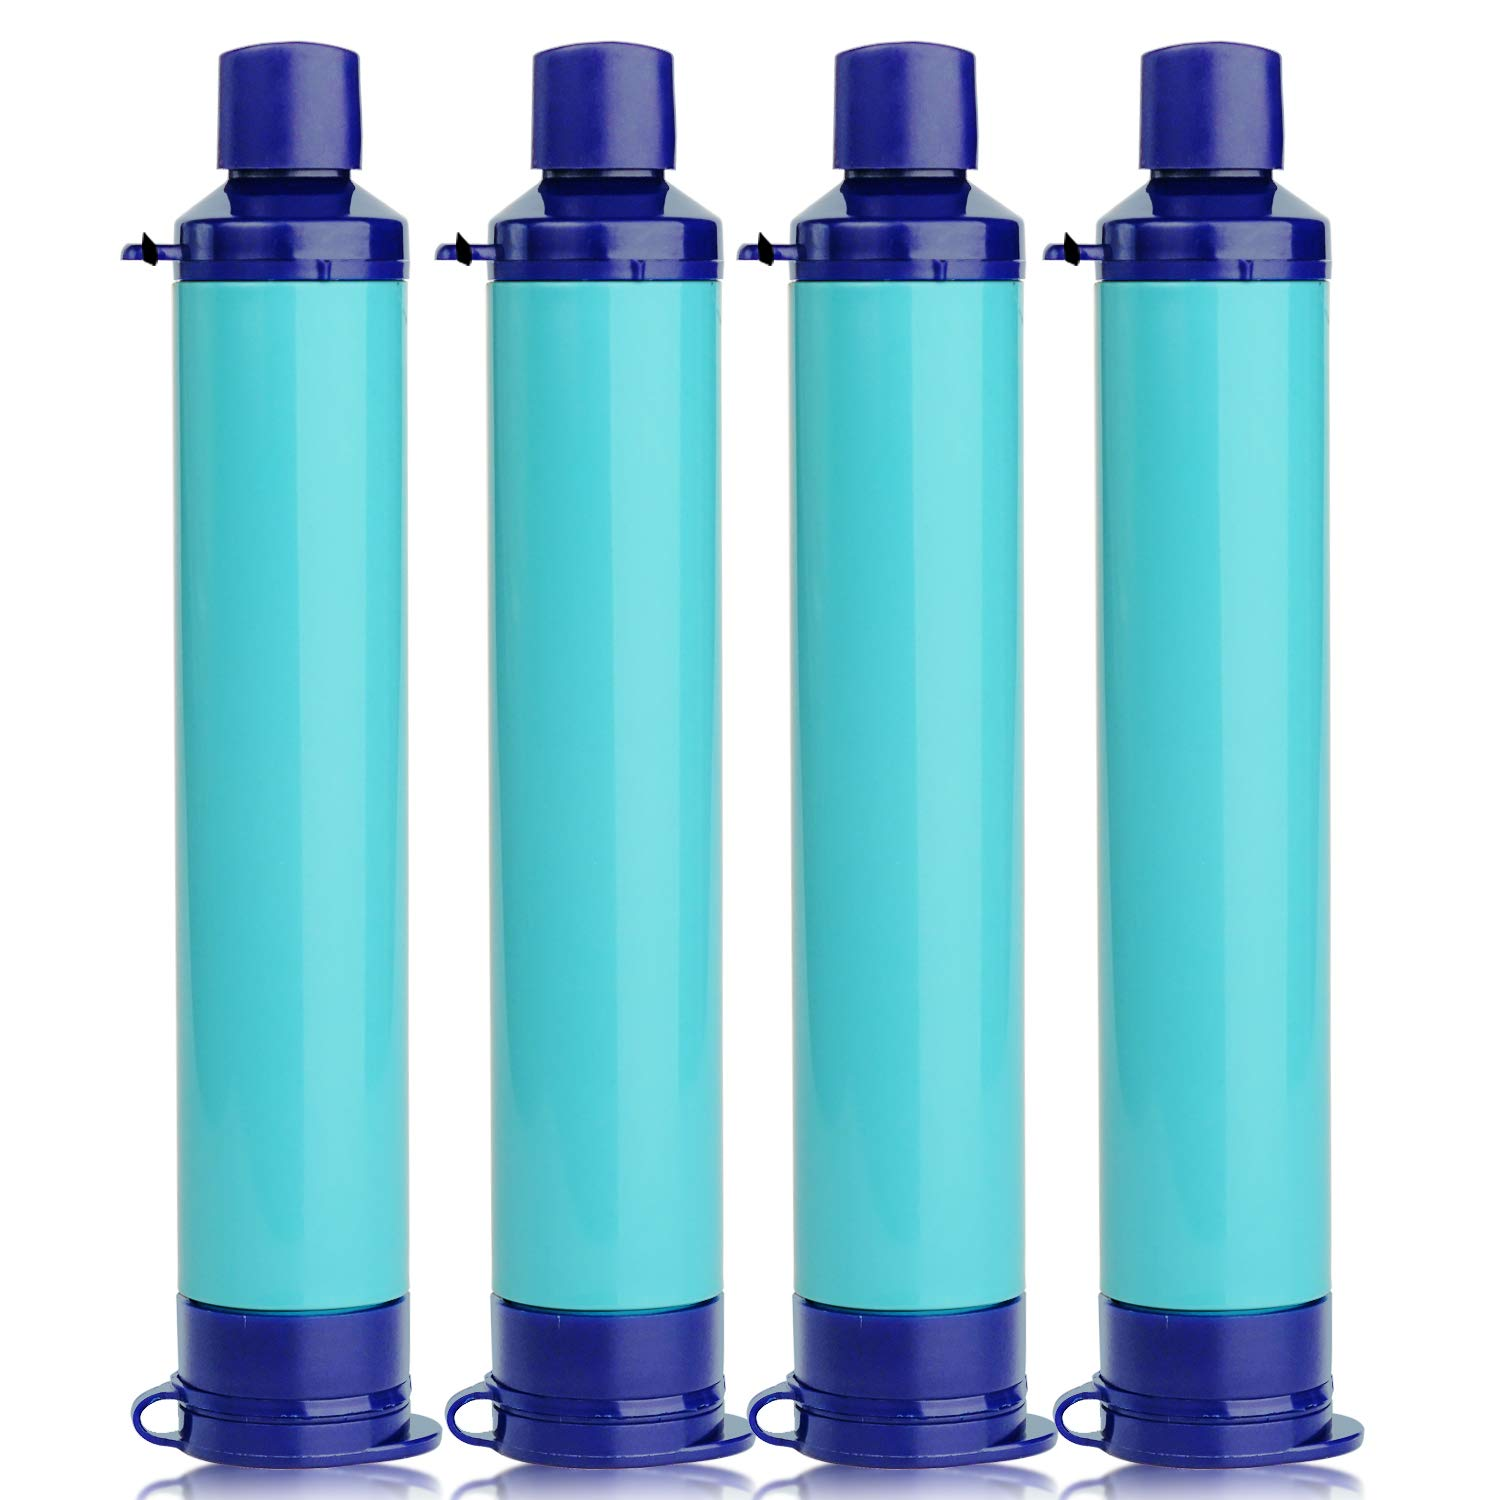 Membrane Solutions Straw Water Filter Survival Filtration Portable Gear Emergency Preparedness Supply for Drinking Hiking Camping Travel Hunting Fishing Team Family Outing